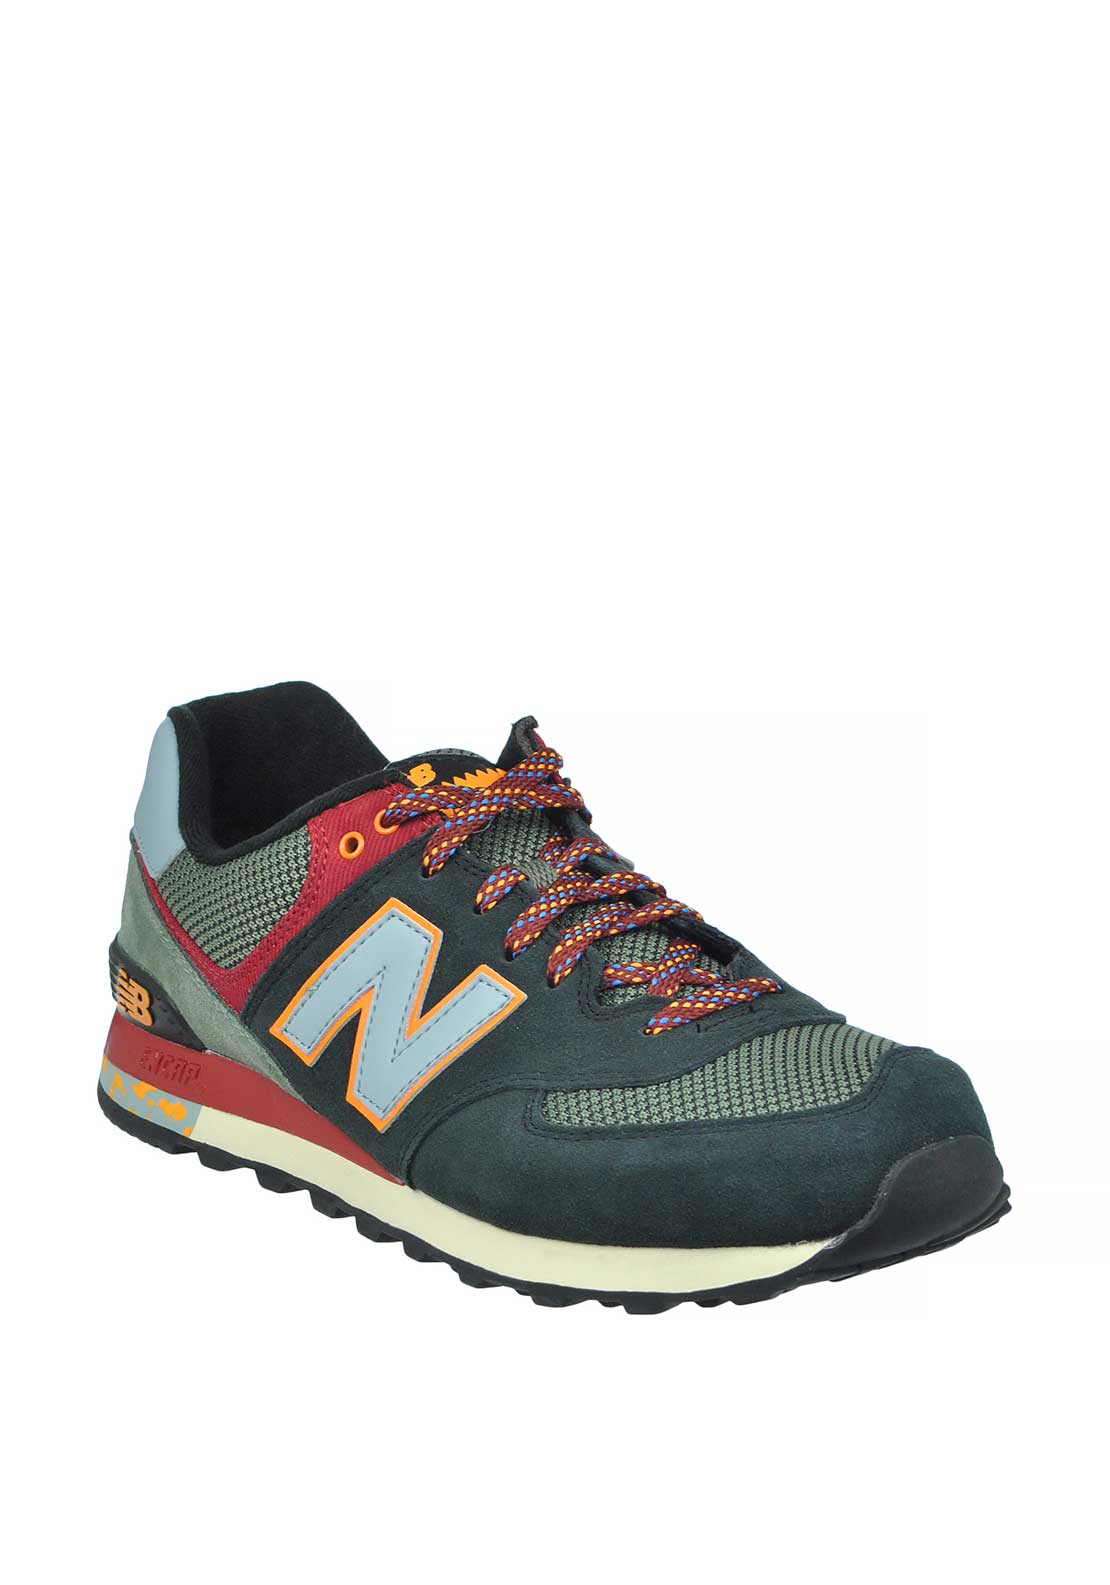 New Balance Mens Classic 574 Fashion Runners, Multi-Coloured